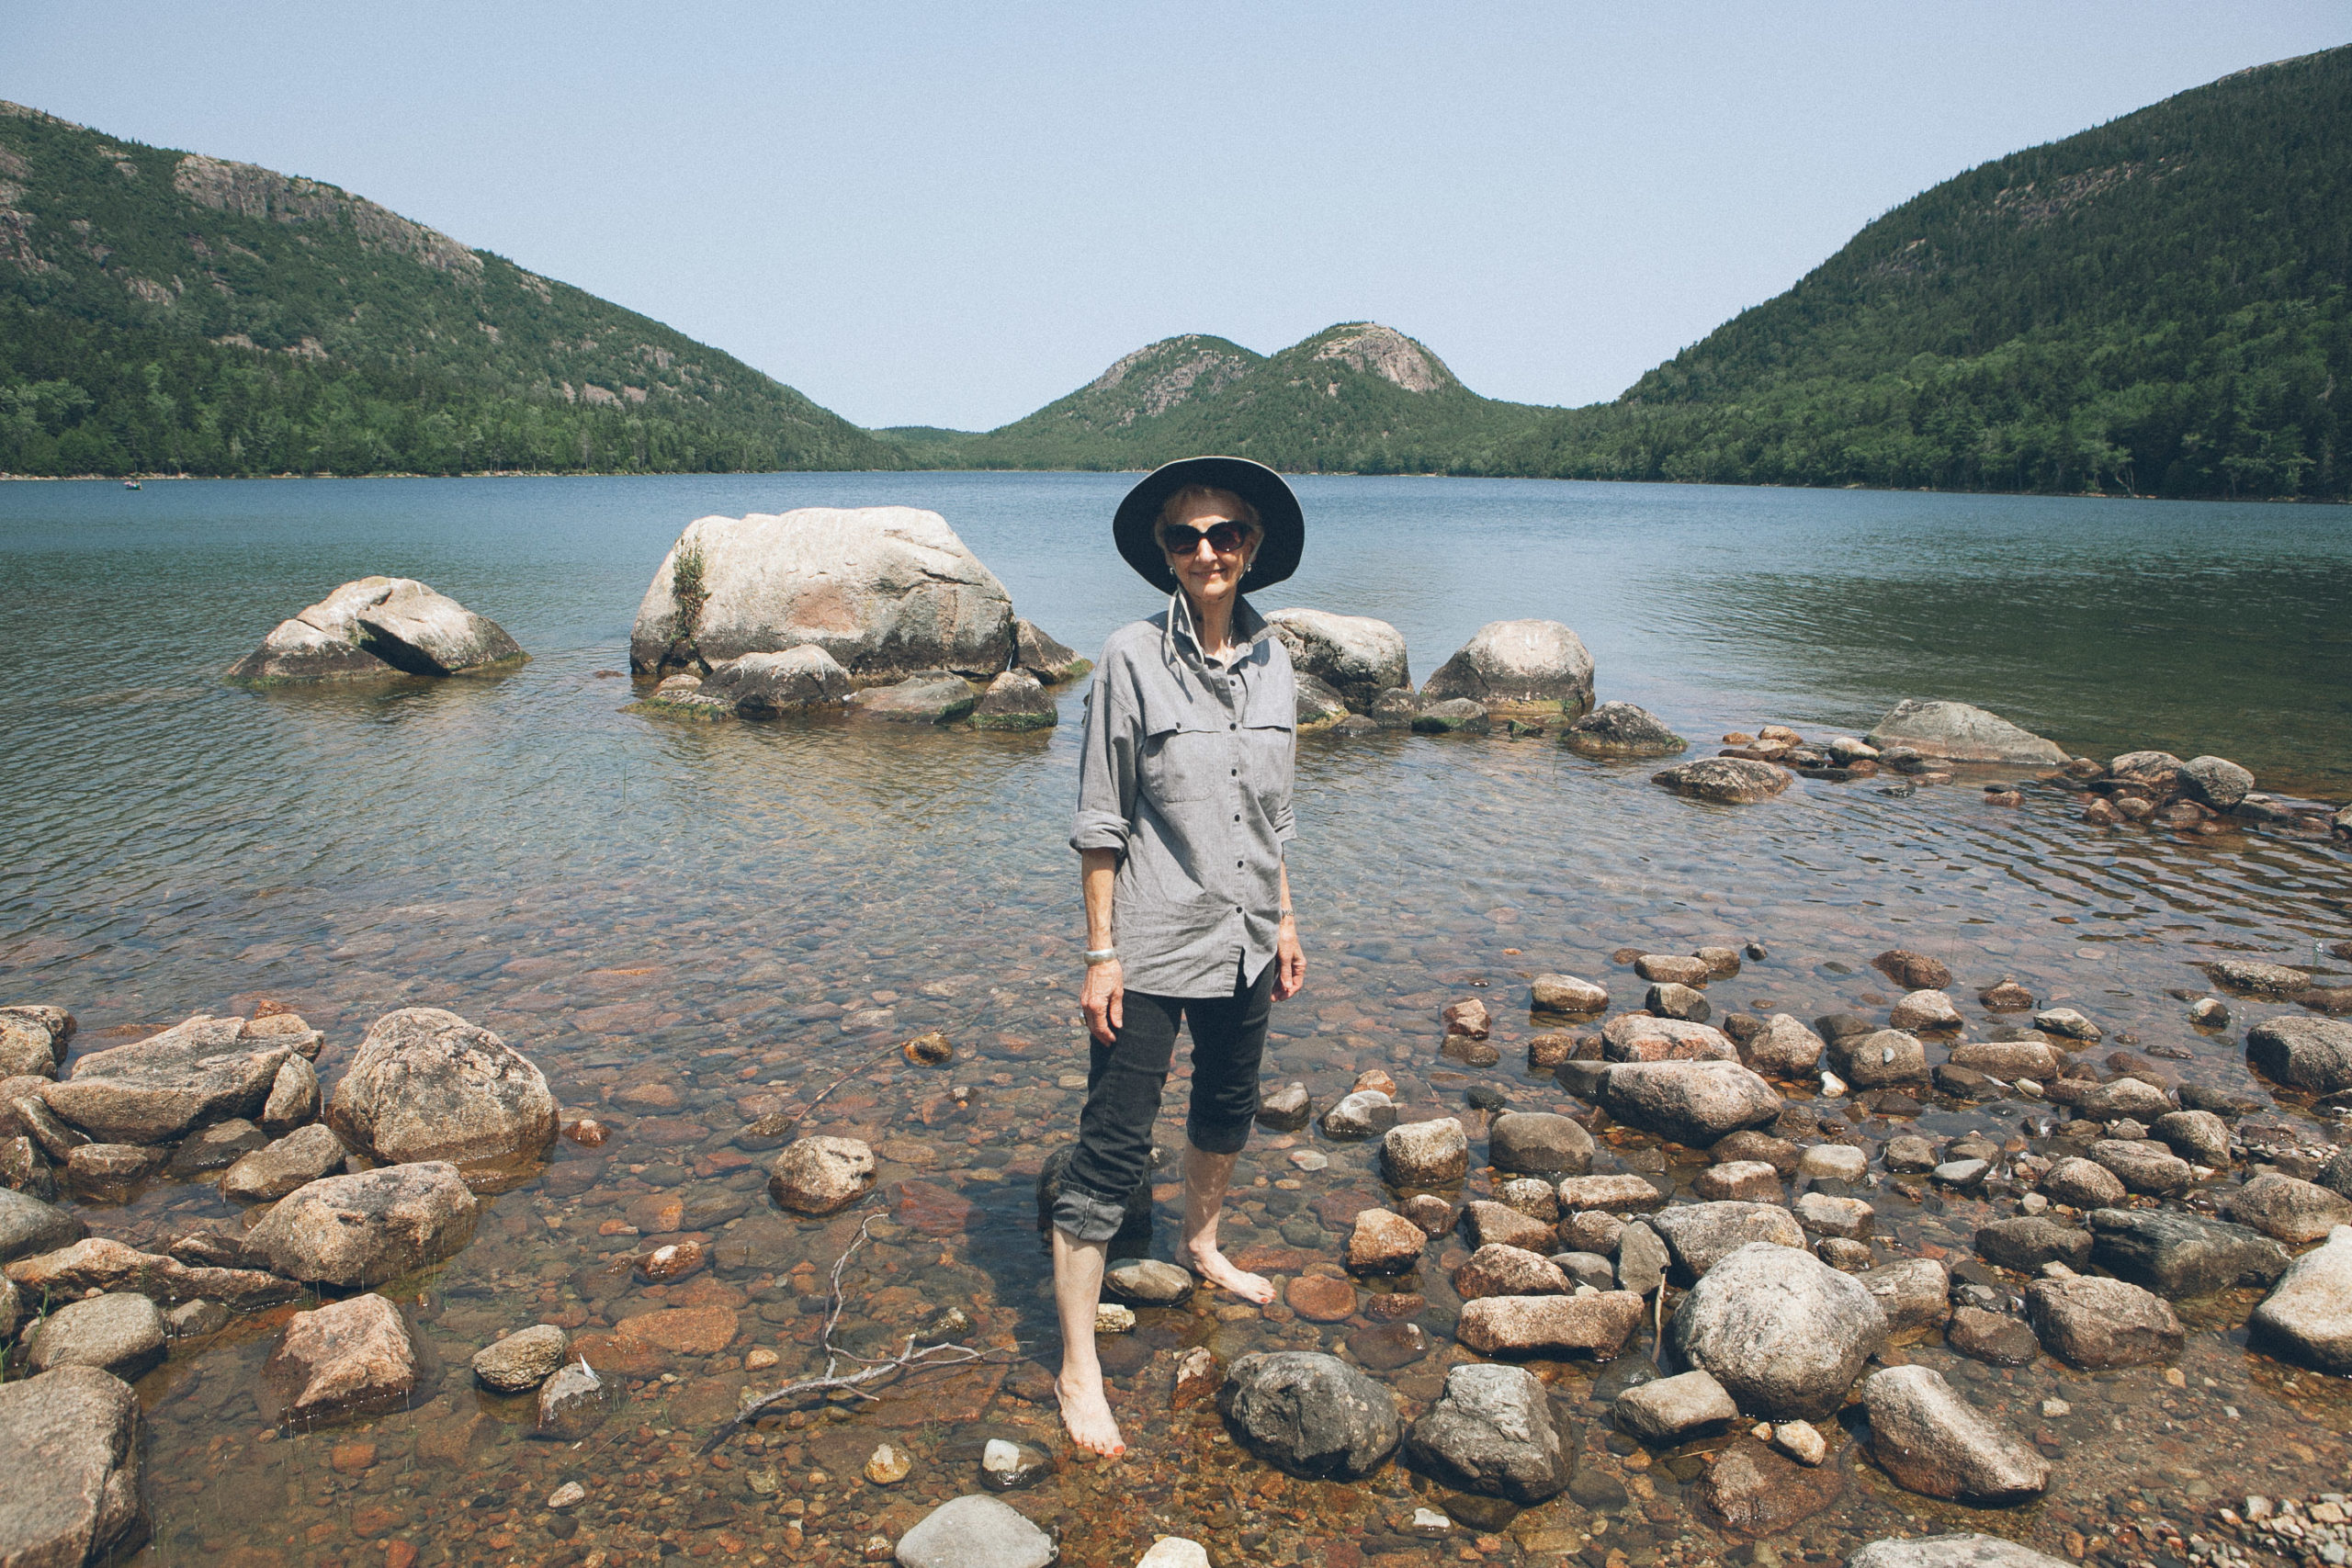 A woman with her pants rolled up to walk in the water of Jordan Pond